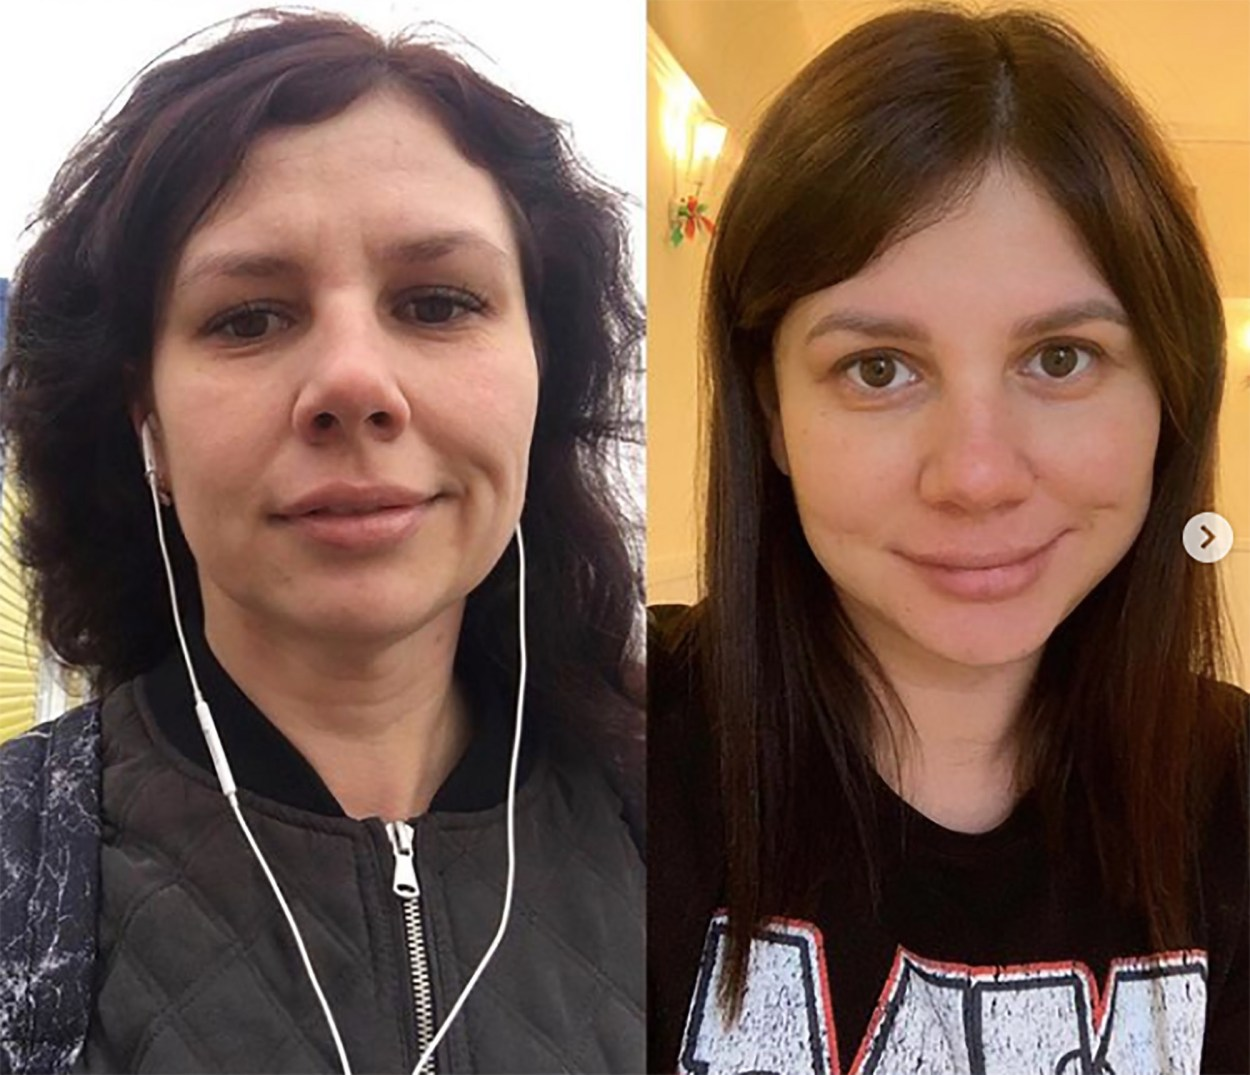 Marina Balmasheva showing photos of her before (left) and after (right) plastic surgery to make her attractive to her step-son whom she lusted after